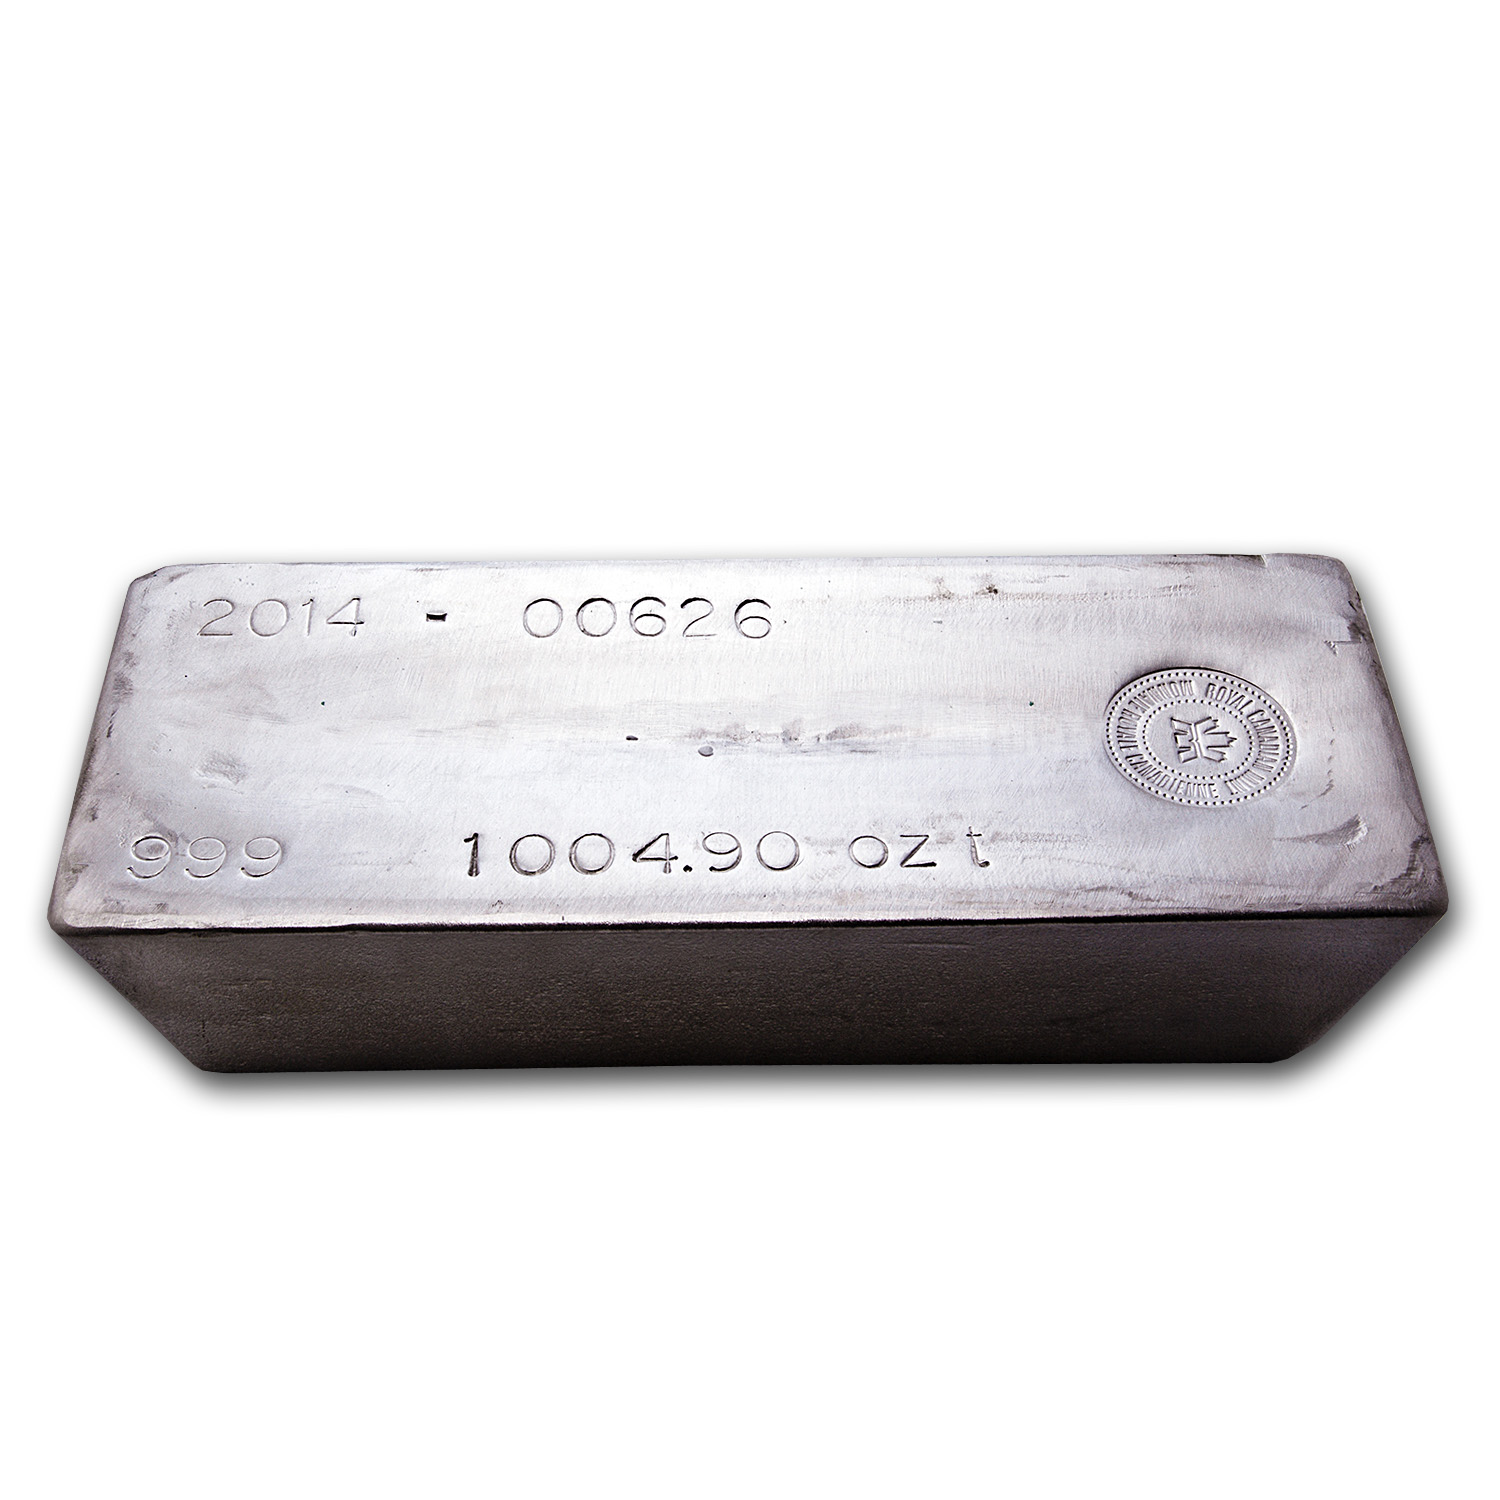 996.70 oz Silver Bars - Royal Canadian Mint (COMEX Deliverable)